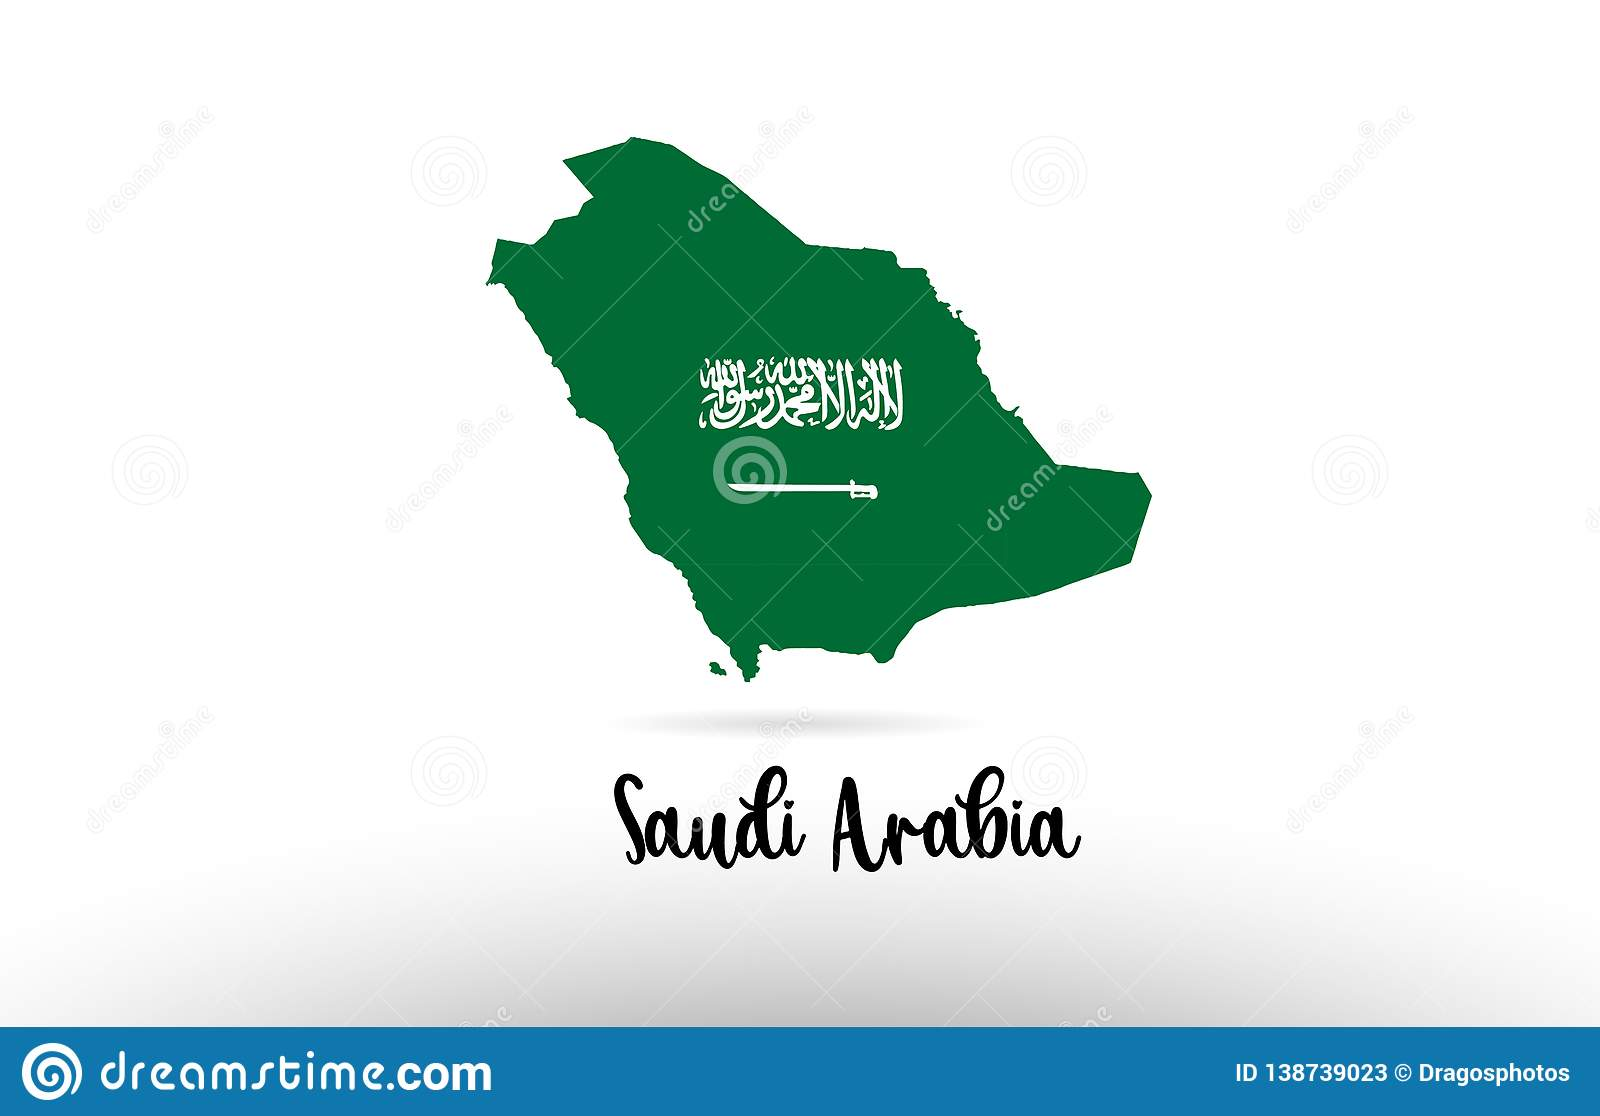 Saudi Arabia Country Flag Inside Map Contour Design Icon ... on dominica country map, togo country map, mesopotamia country map, persian gulf country map, east africa country map, egypt suez canal on map, turkestan country map, republic of georgia country map, filipino country map, taliban country map, u.s. country map, soviet union country map, kyrgyzstan country map, british virgin islands country map, burkina faso country map, vatican country map, botswana country map, uzbekistan country map, northern south america country map, worldwide country map,